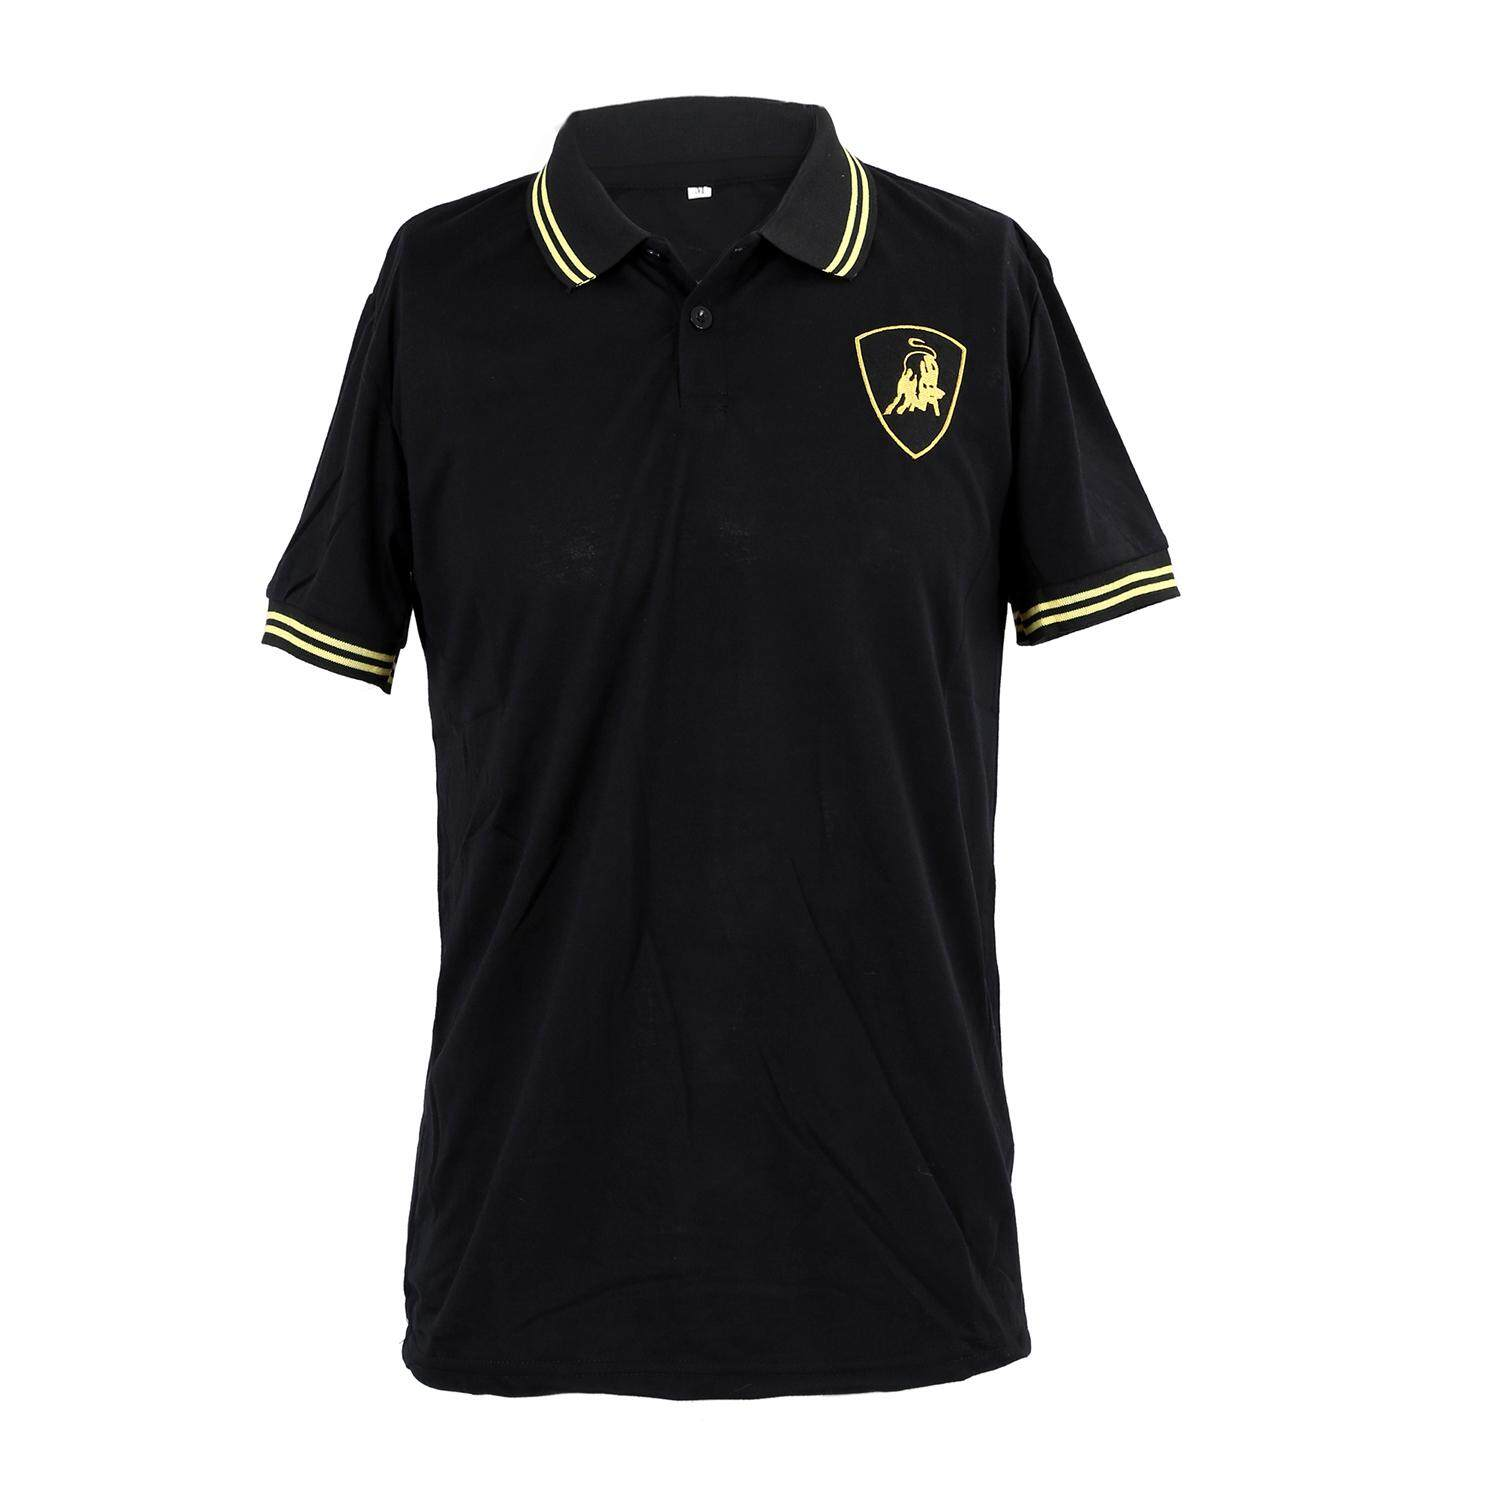 NEW BULL POLO Shirt Short Sleeve Mens Slim Fit T-Shirts Top Tee-black - intl